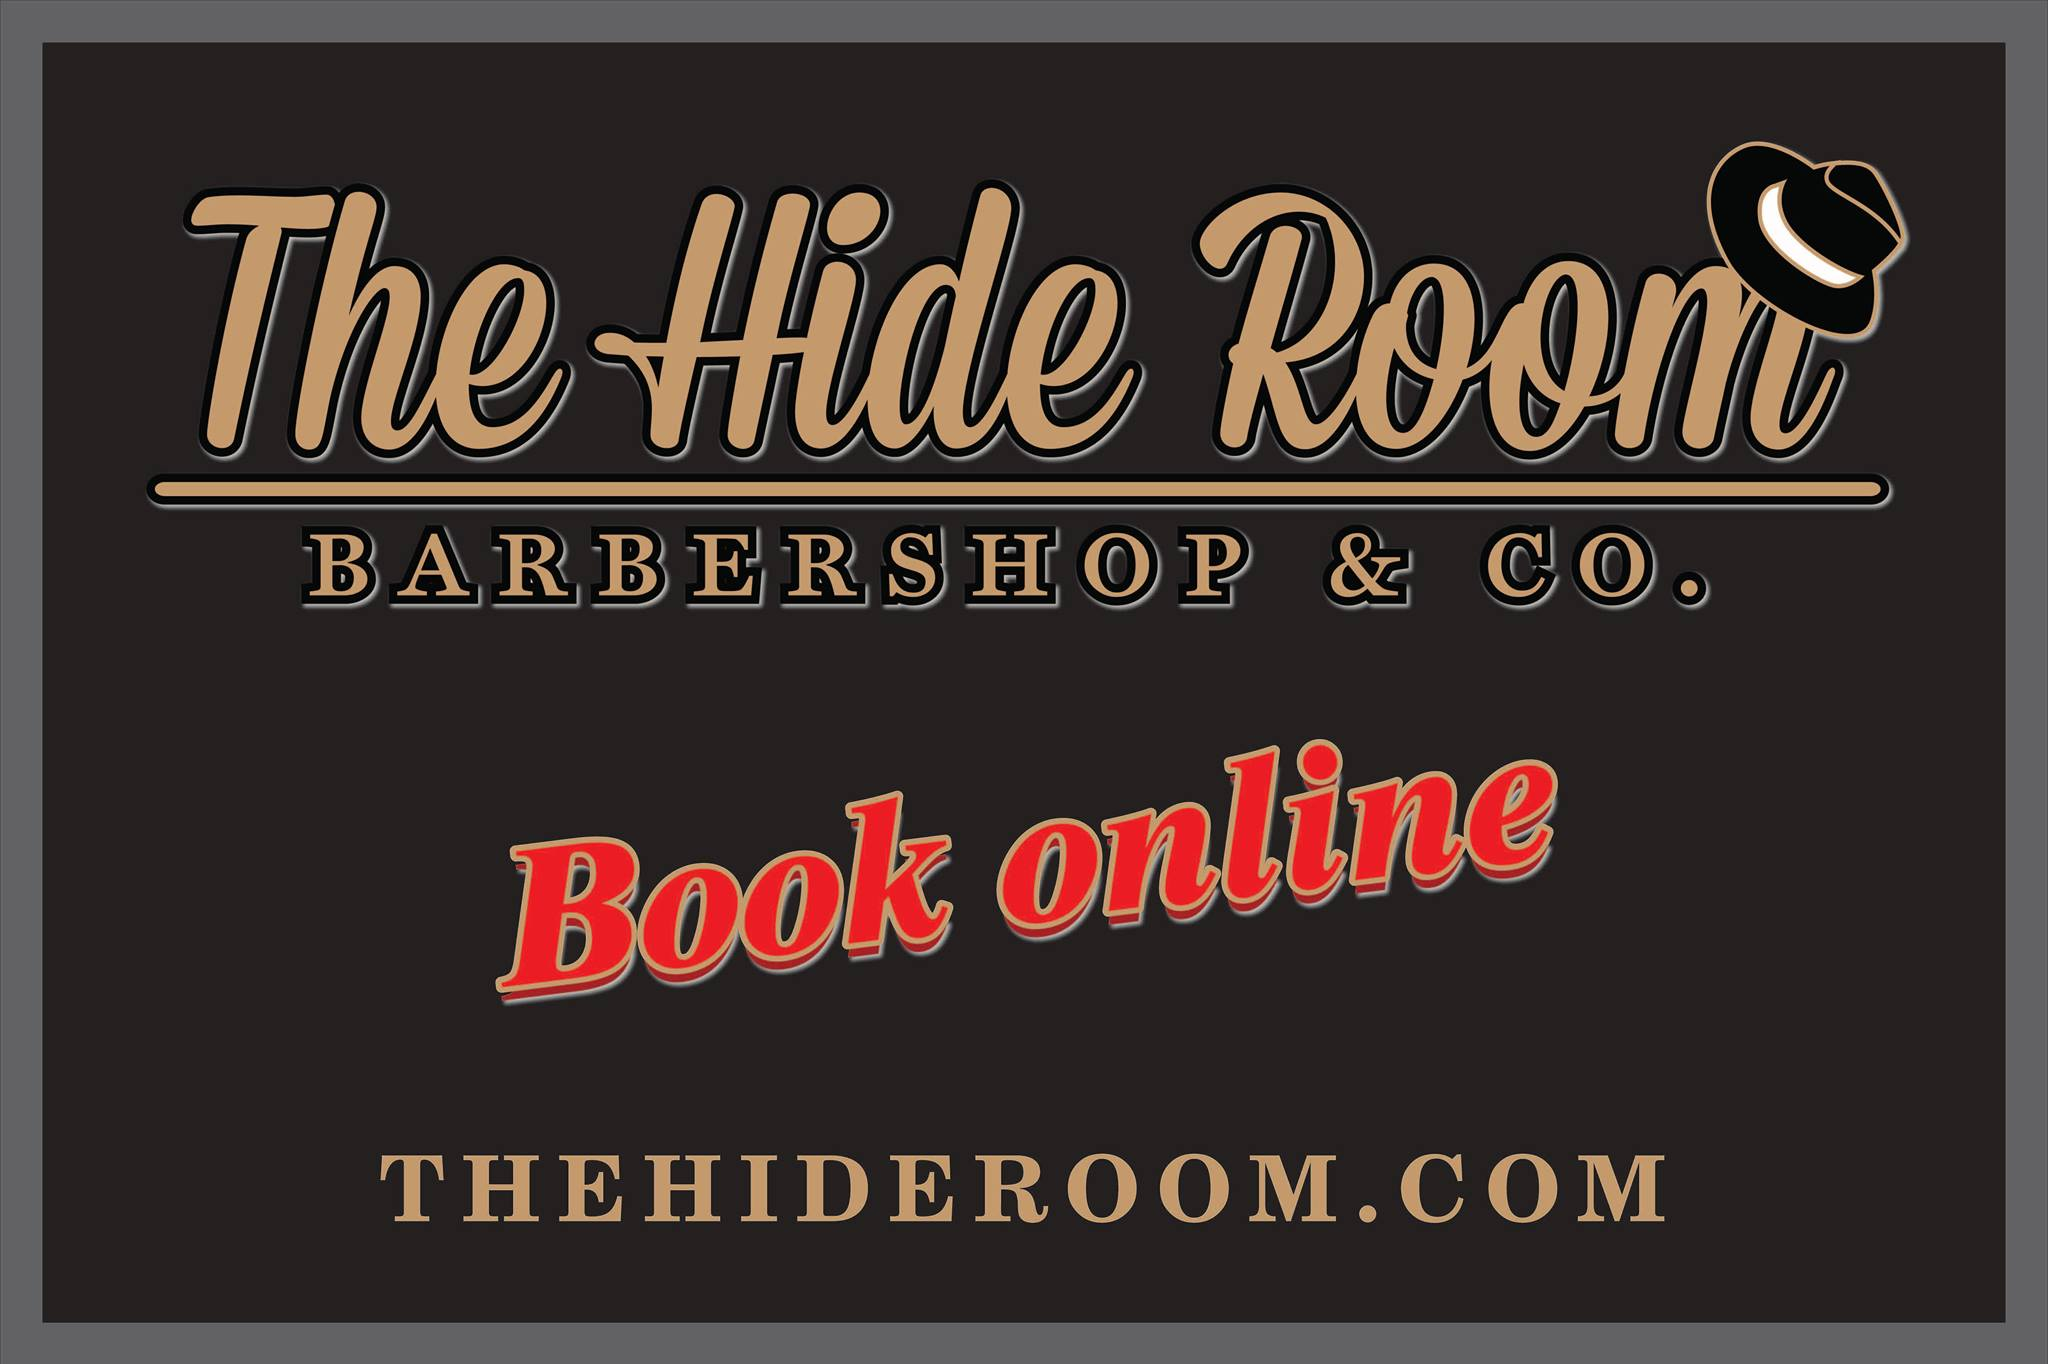 The Hide Room barbershop and CO